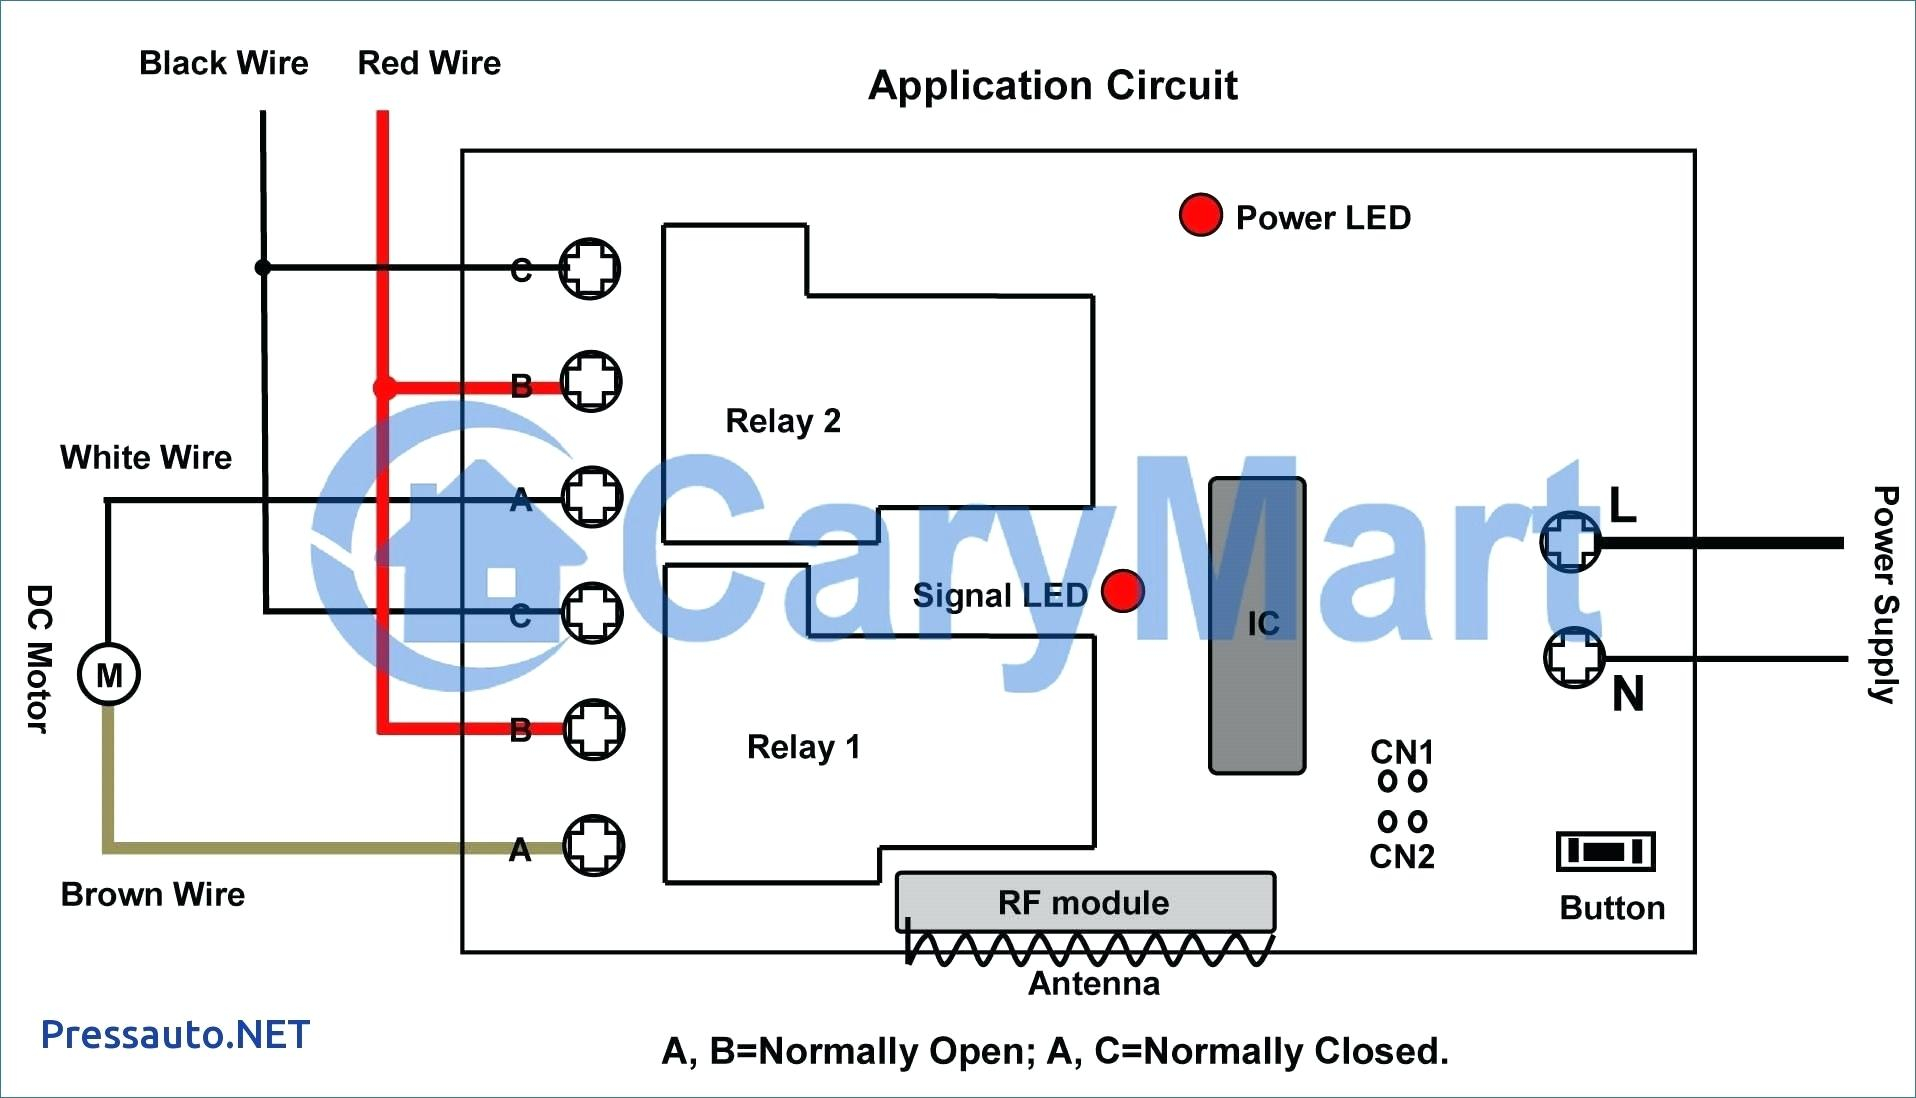 belimo tfb120 s wiring diagram gallery belimo tfb120 s wiring diagram honeywell actuator wiring diagram inspirational wiring diagram for 3o